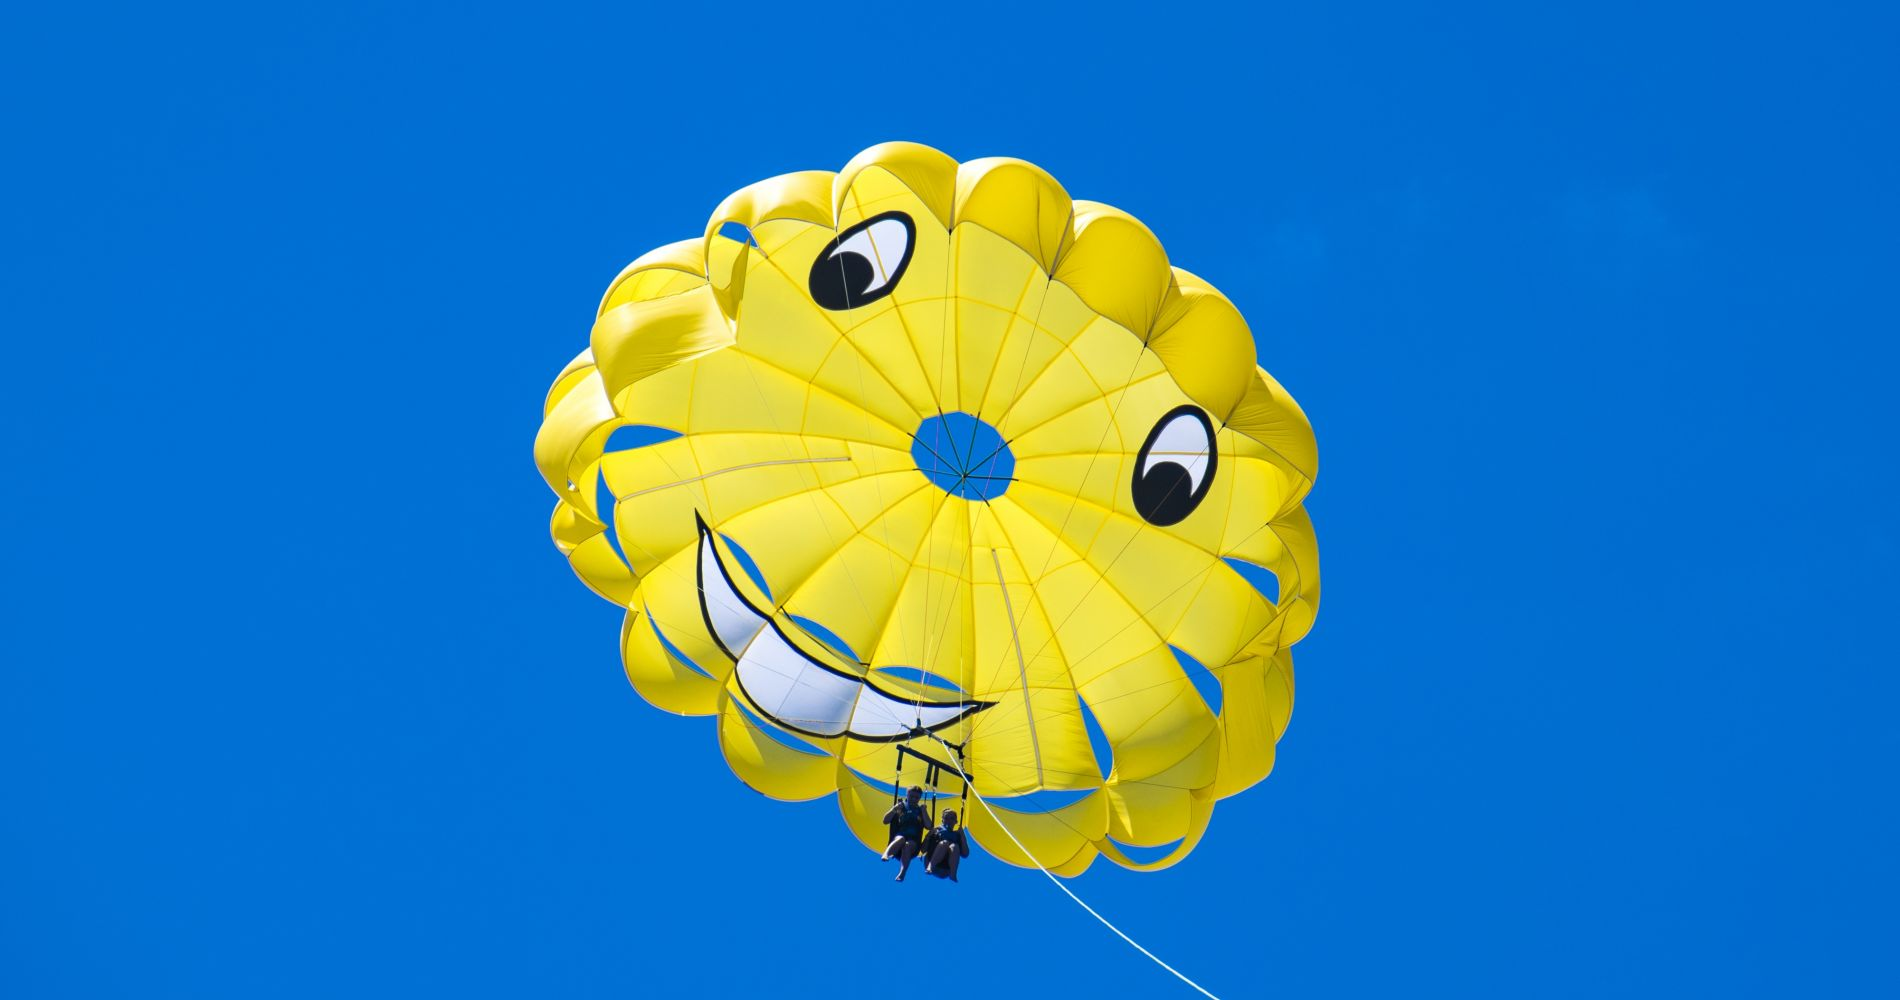 Parasailing on the French Riviera